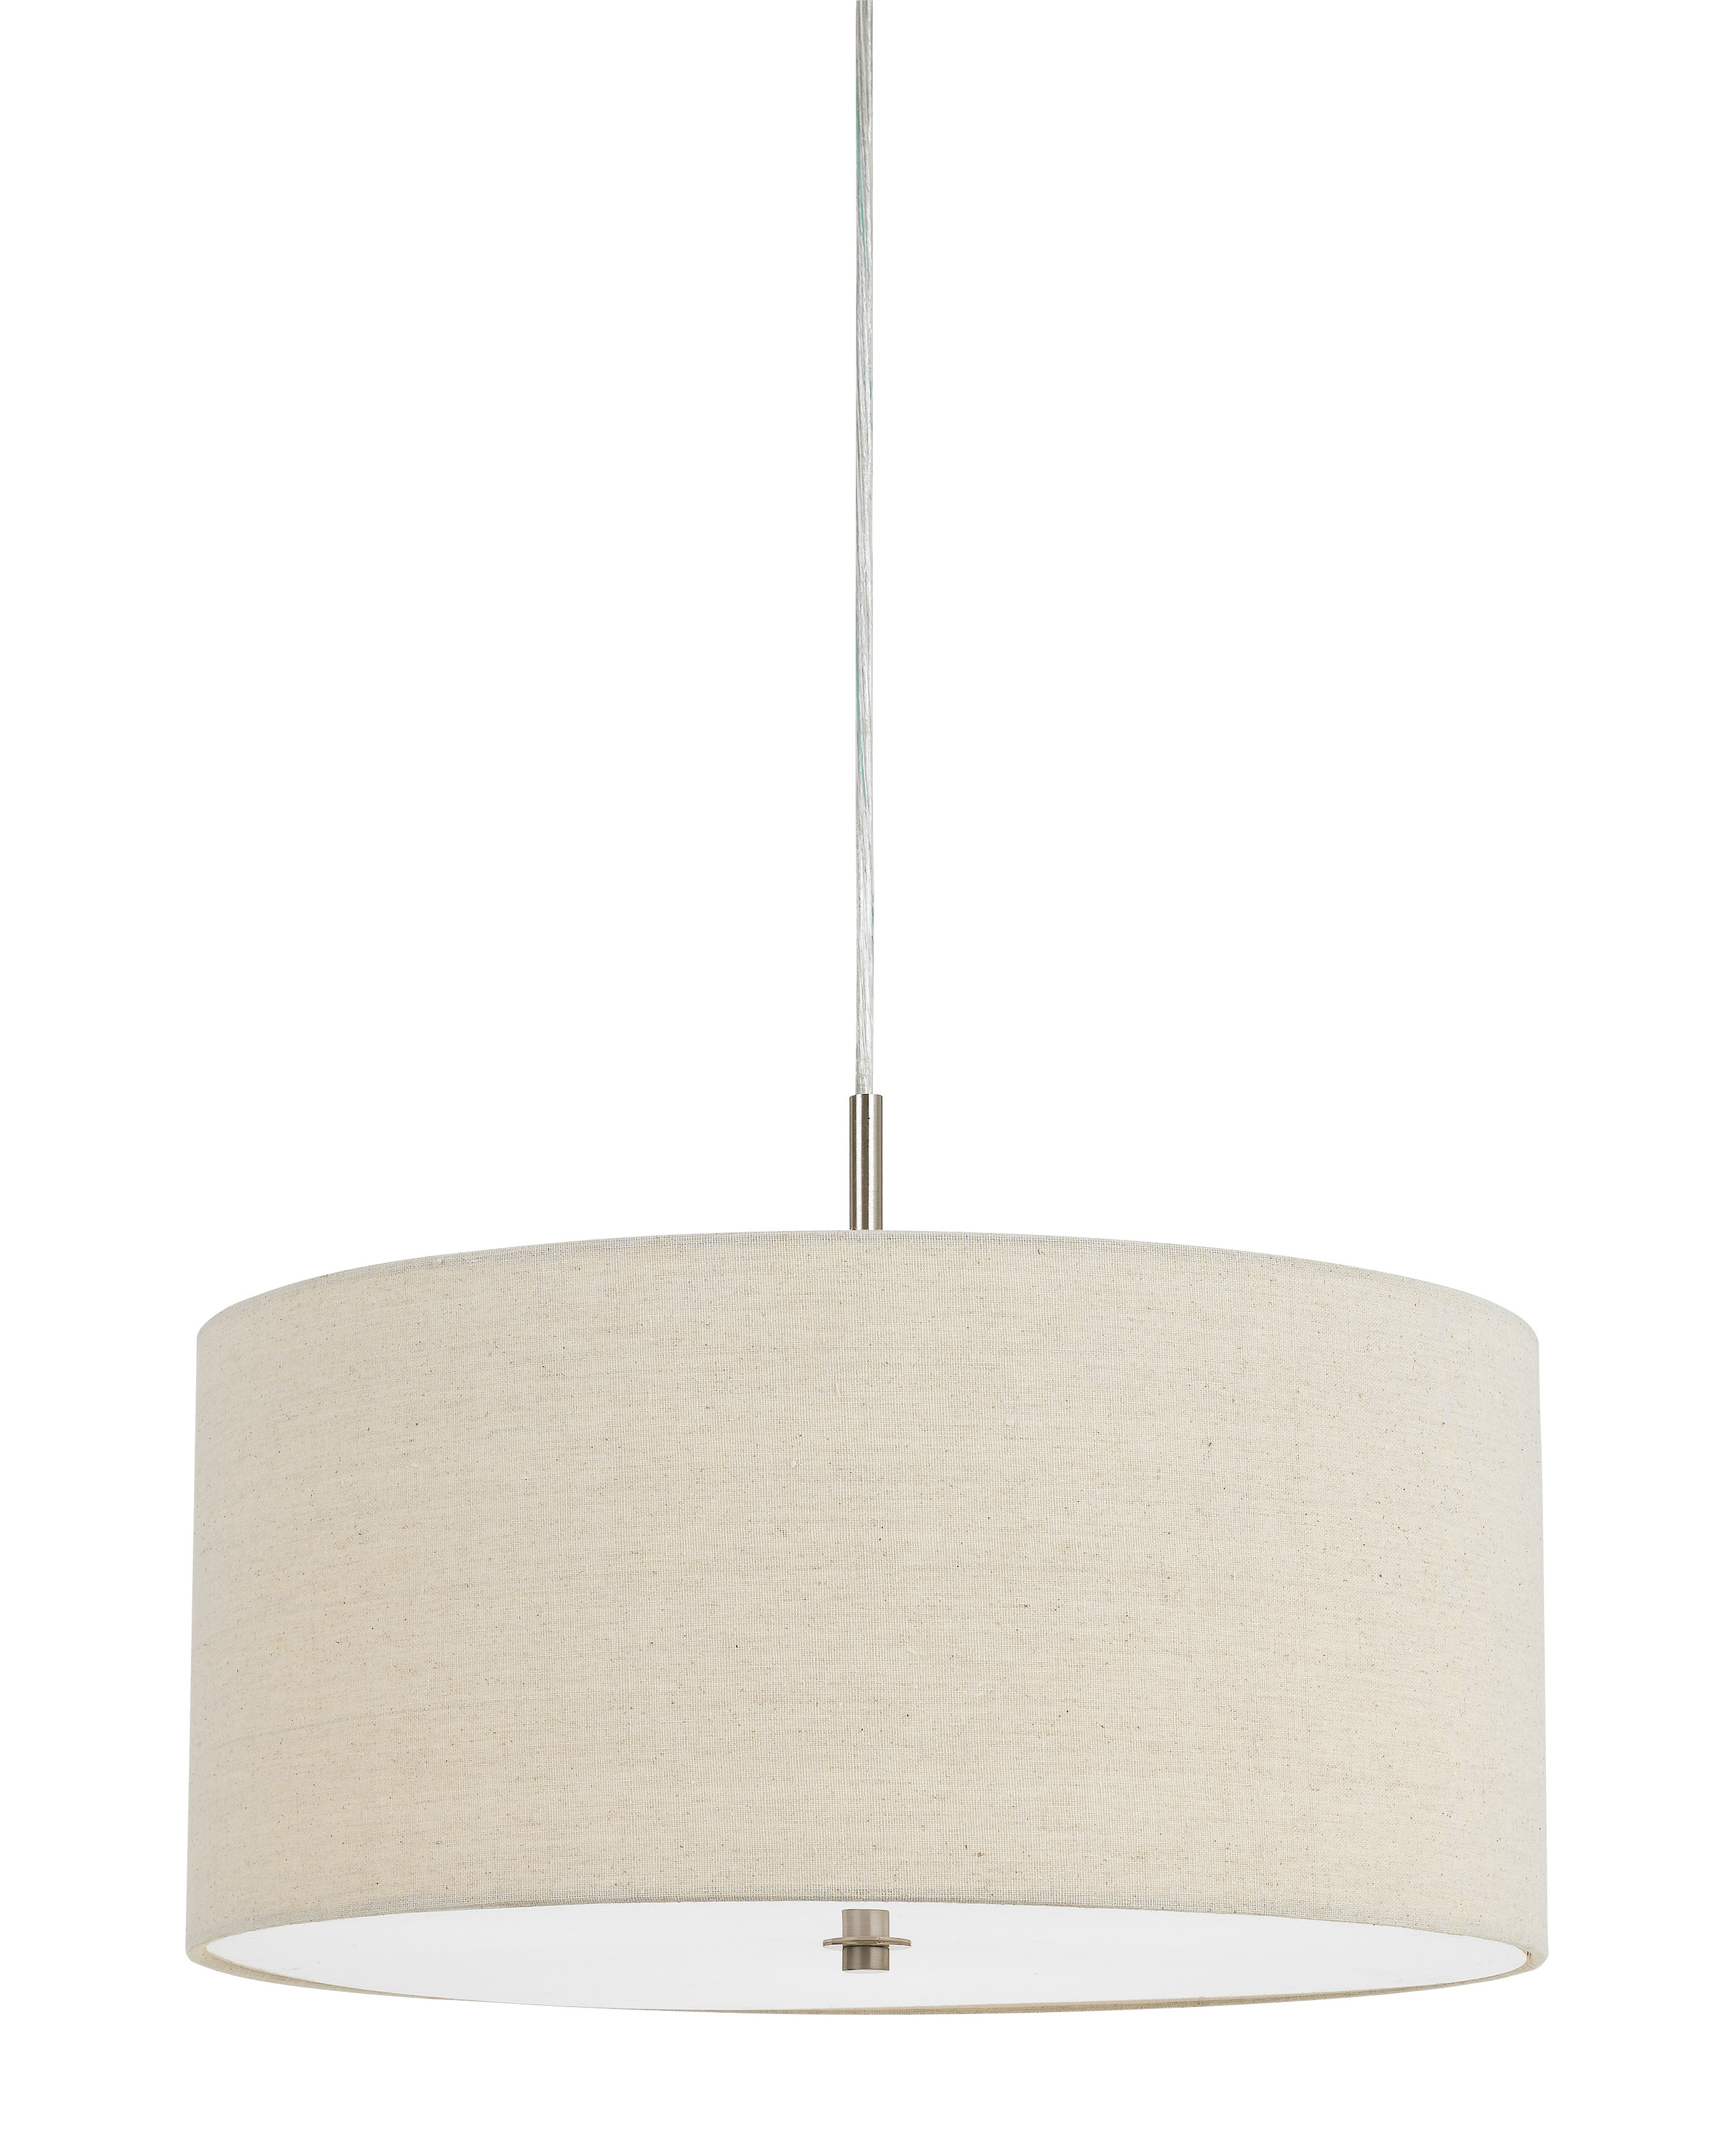 Tristian 3 Light Drum Chandelier Pertaining To Friedland 3 Light Drum Tiered Pendants (View 4 of 30)